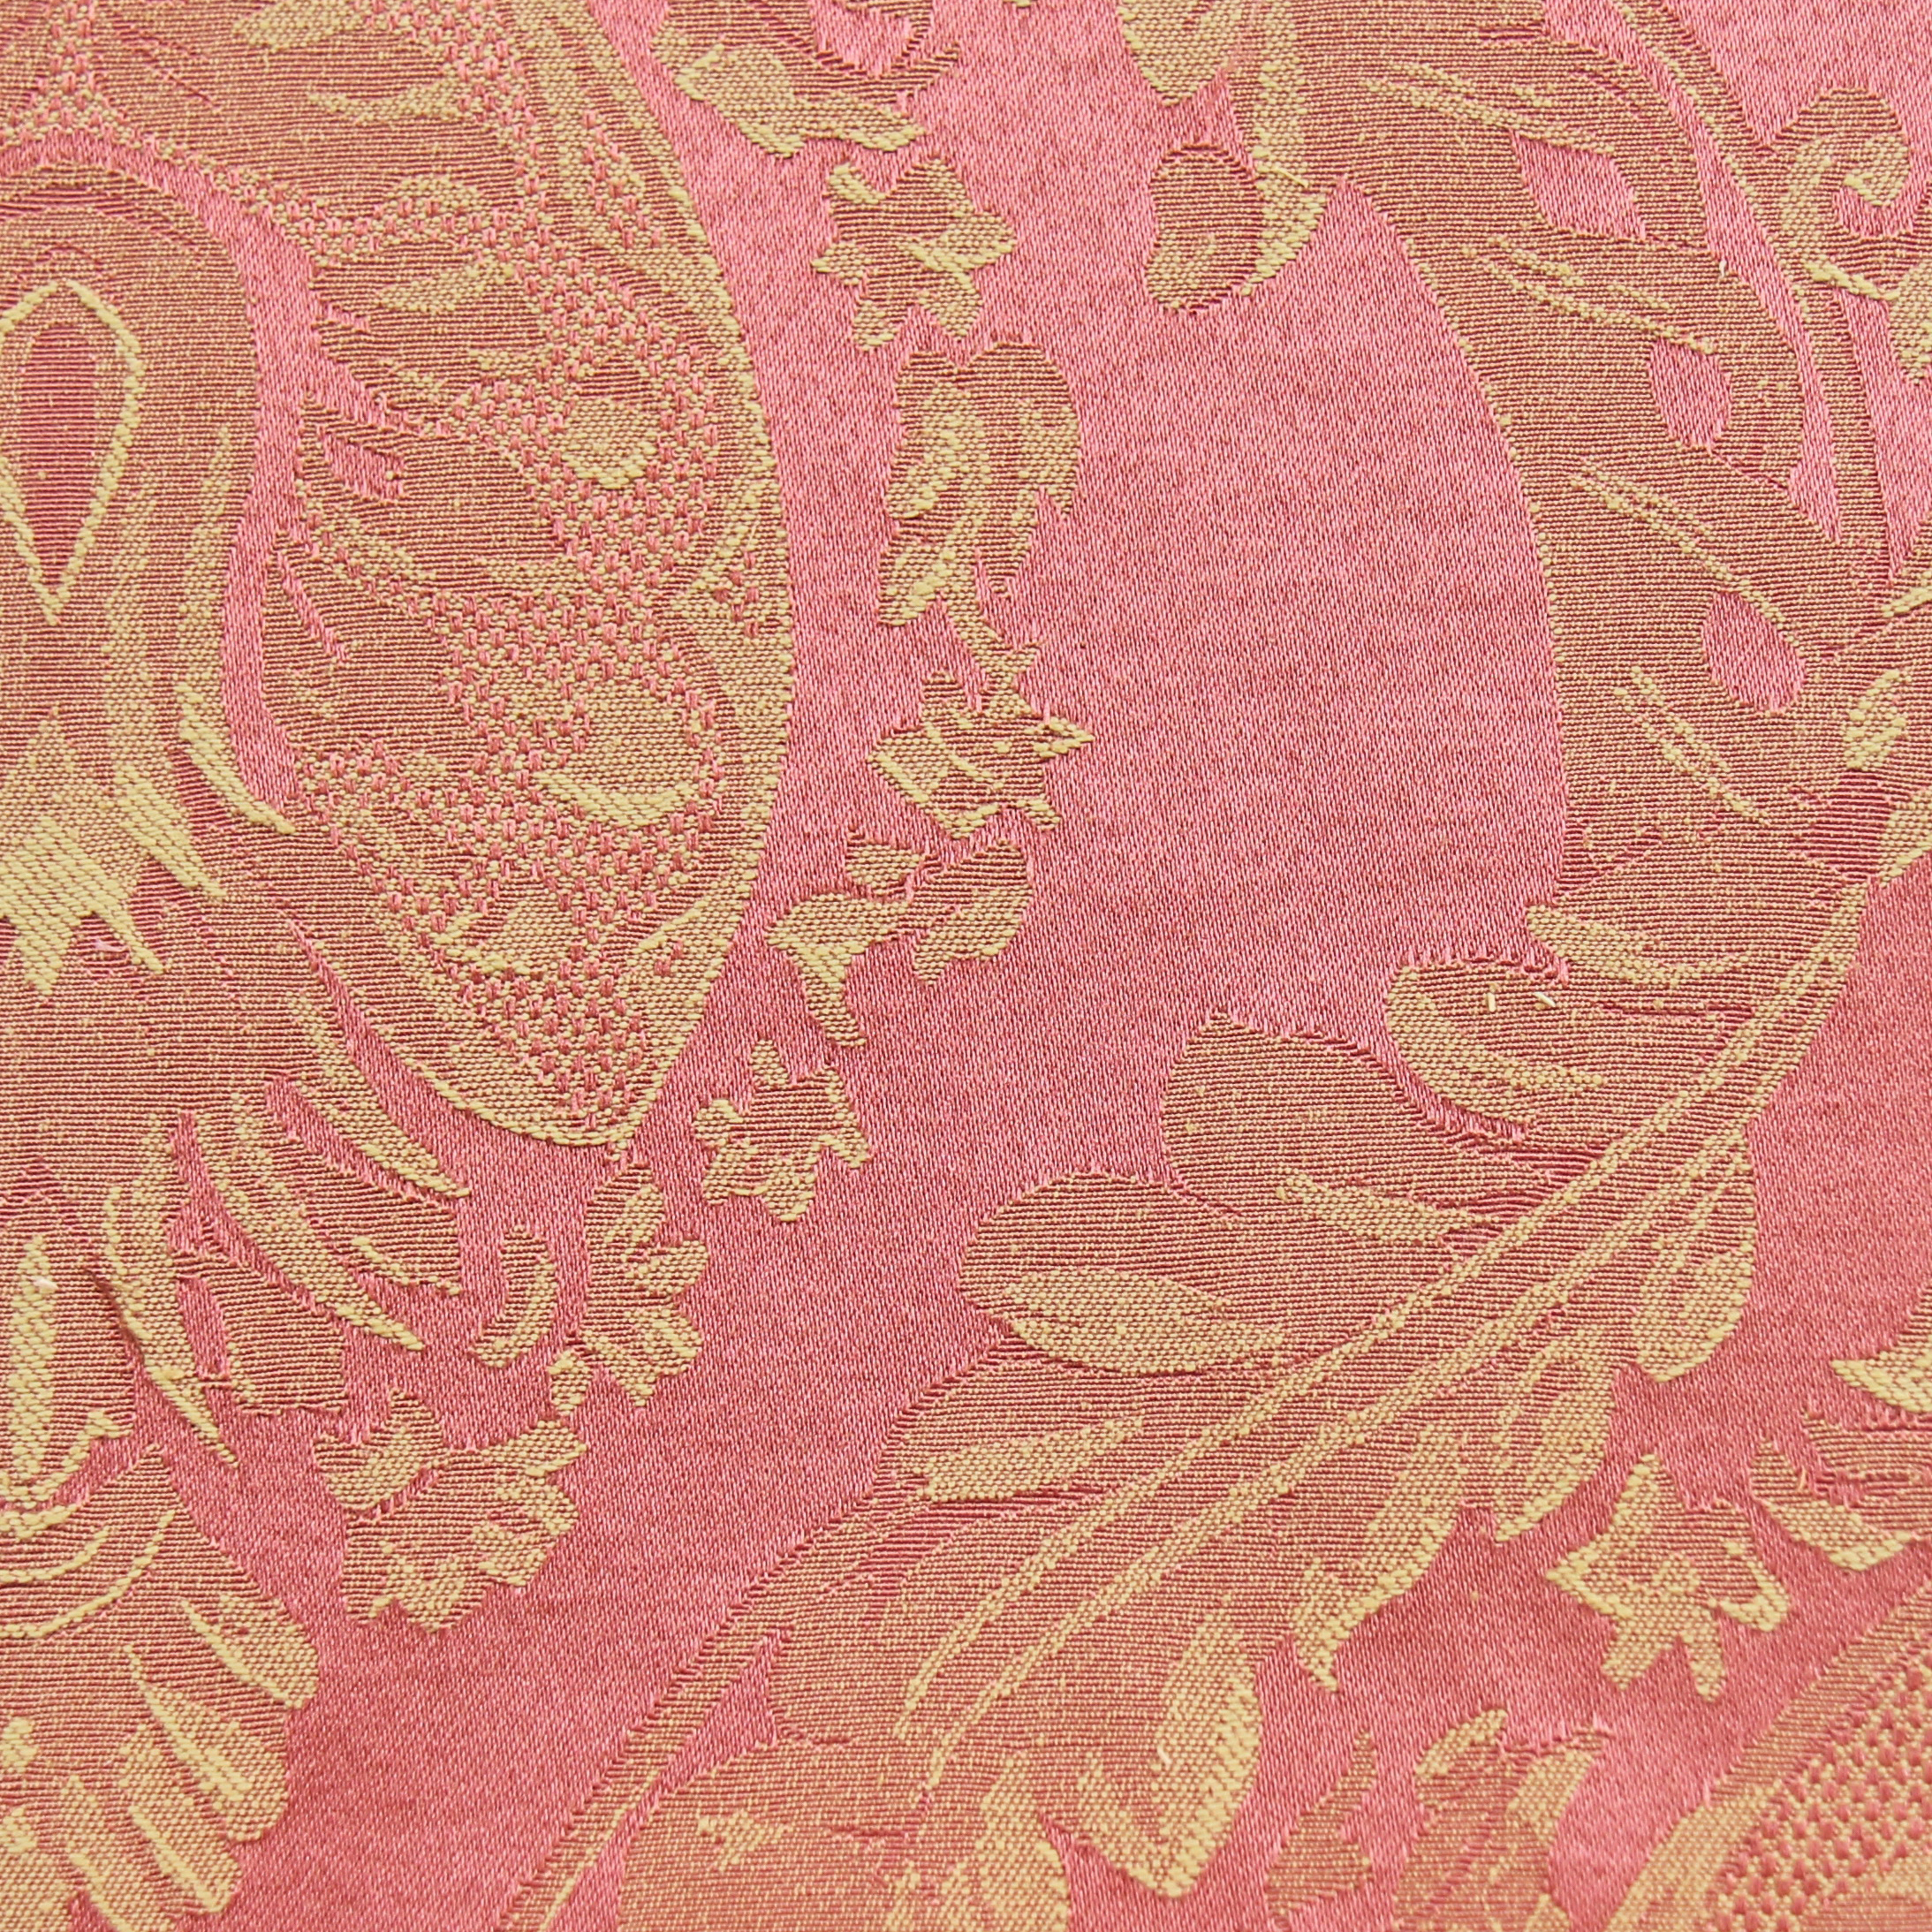 NO 45-45 RS X1 Plus NO 15 Fabric Upholstery Sample